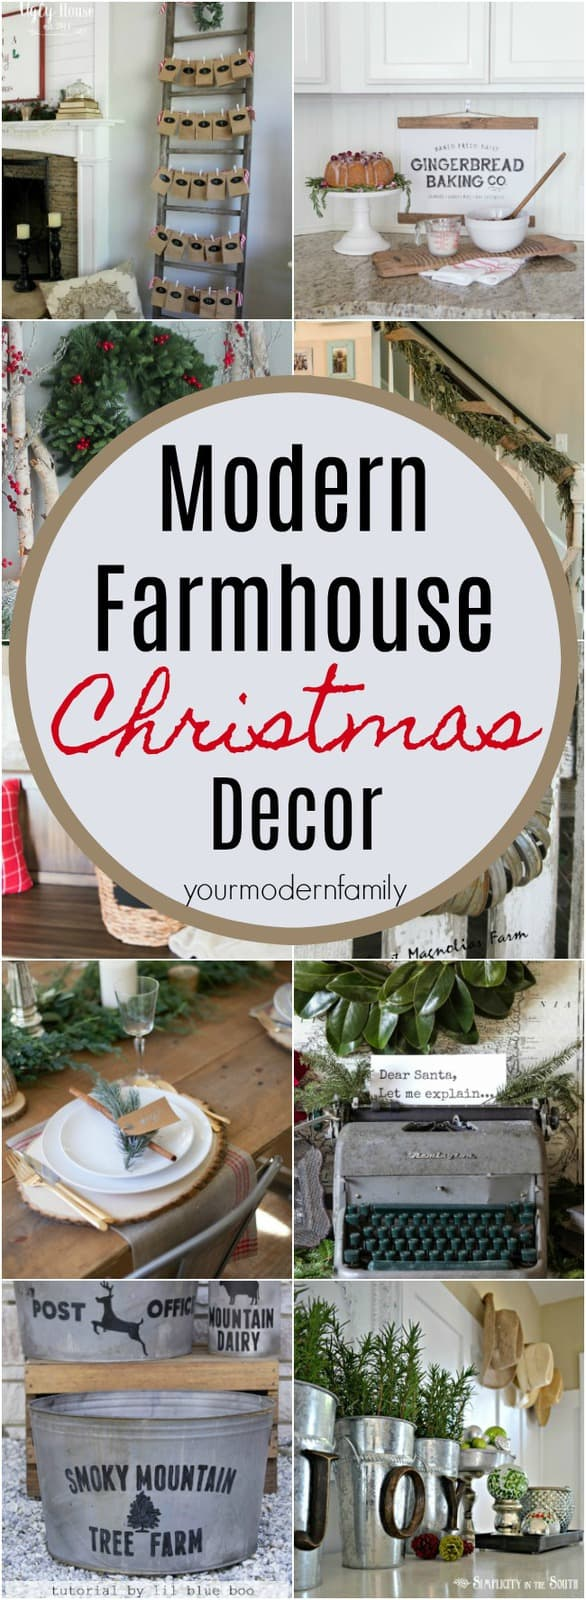 the best modern farmhouse christmas decor ideas - Farmhouse Christmas Decor